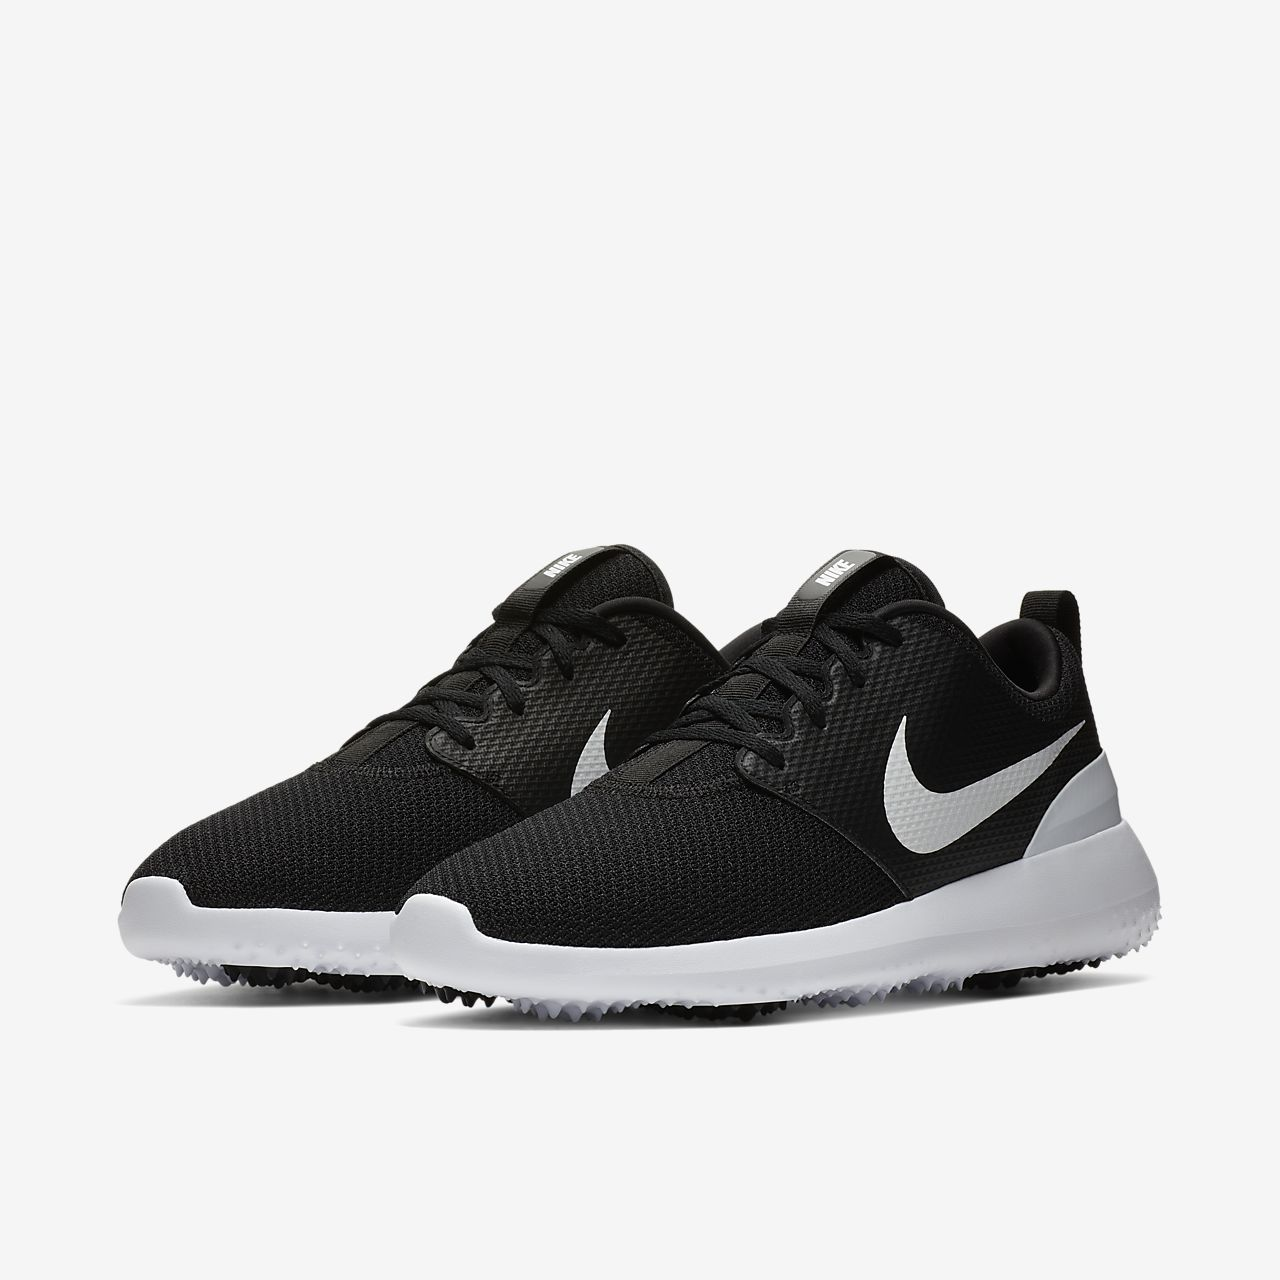 f954cf4df5bc Nike Roshe G Men s Golf Shoe. Nike.com